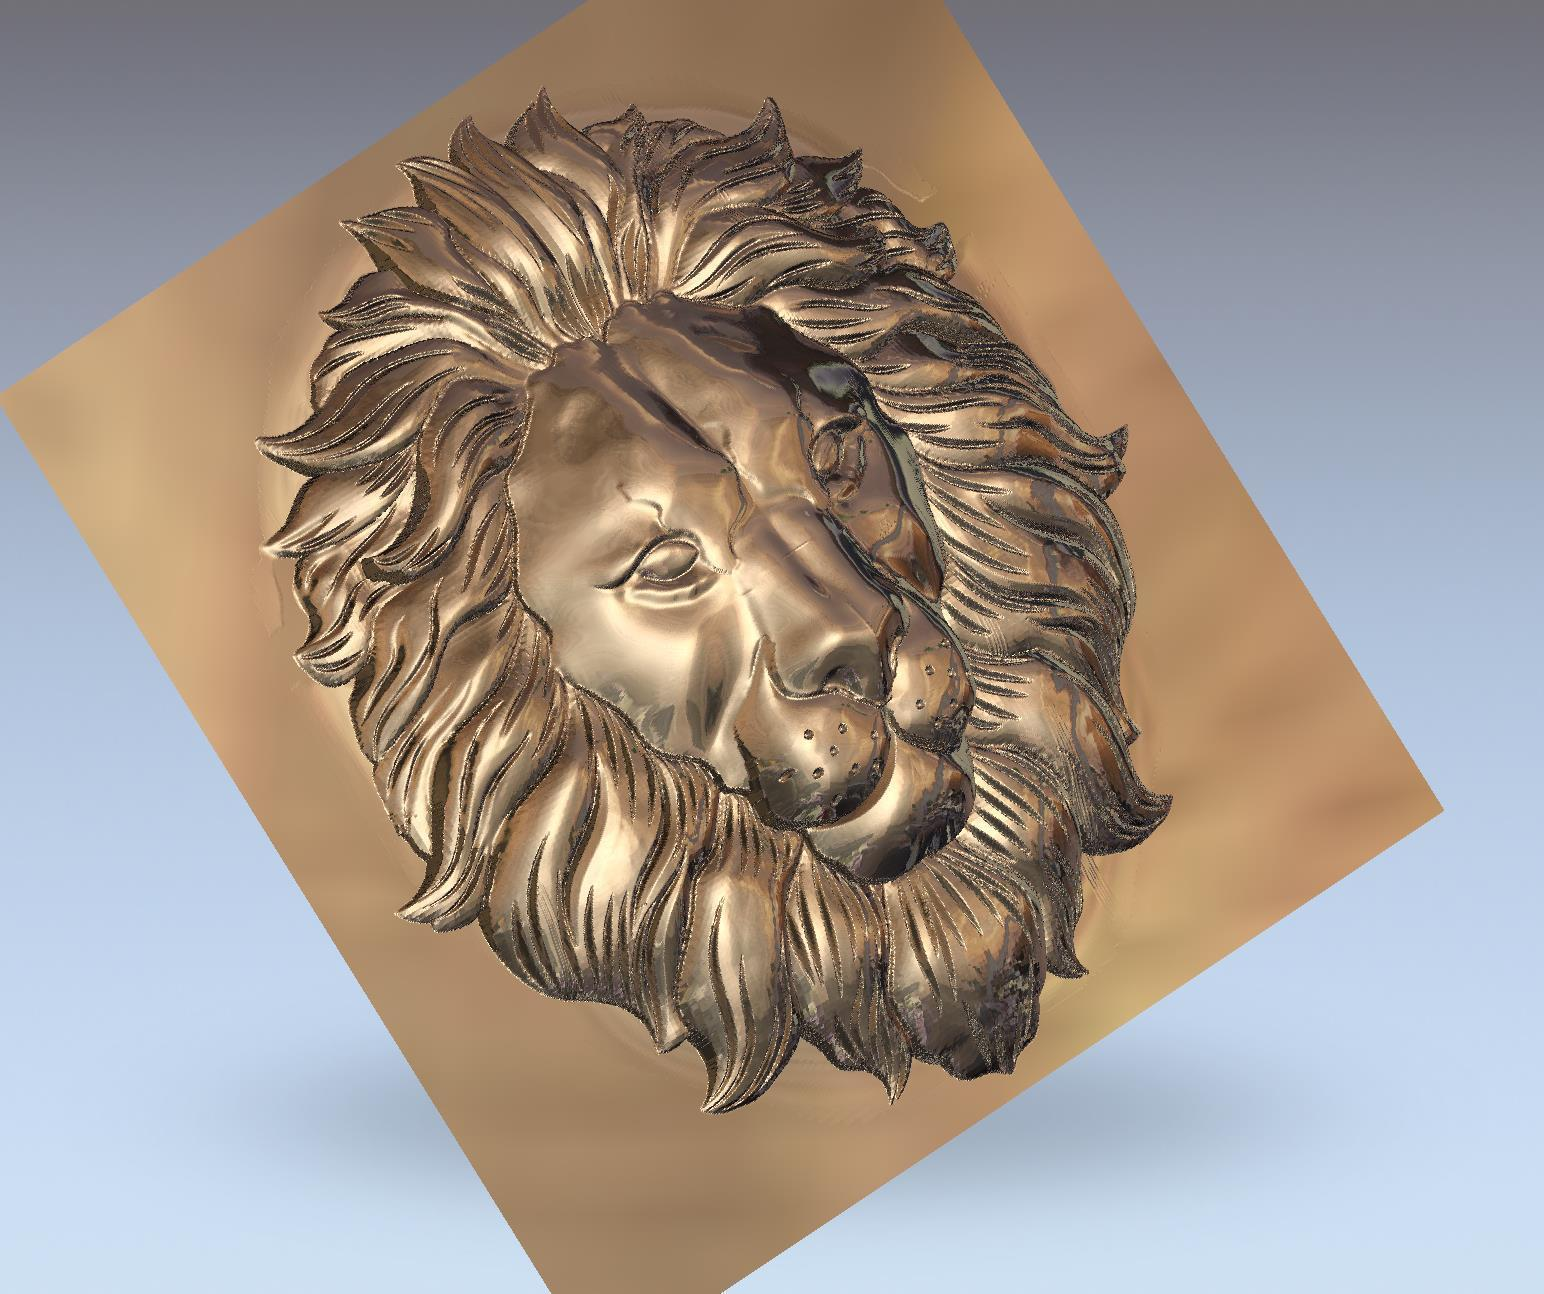 lion_headB5.jpg Download free STL file lion head bas-relief model for cnc • 3D printer design, stlfilesfree